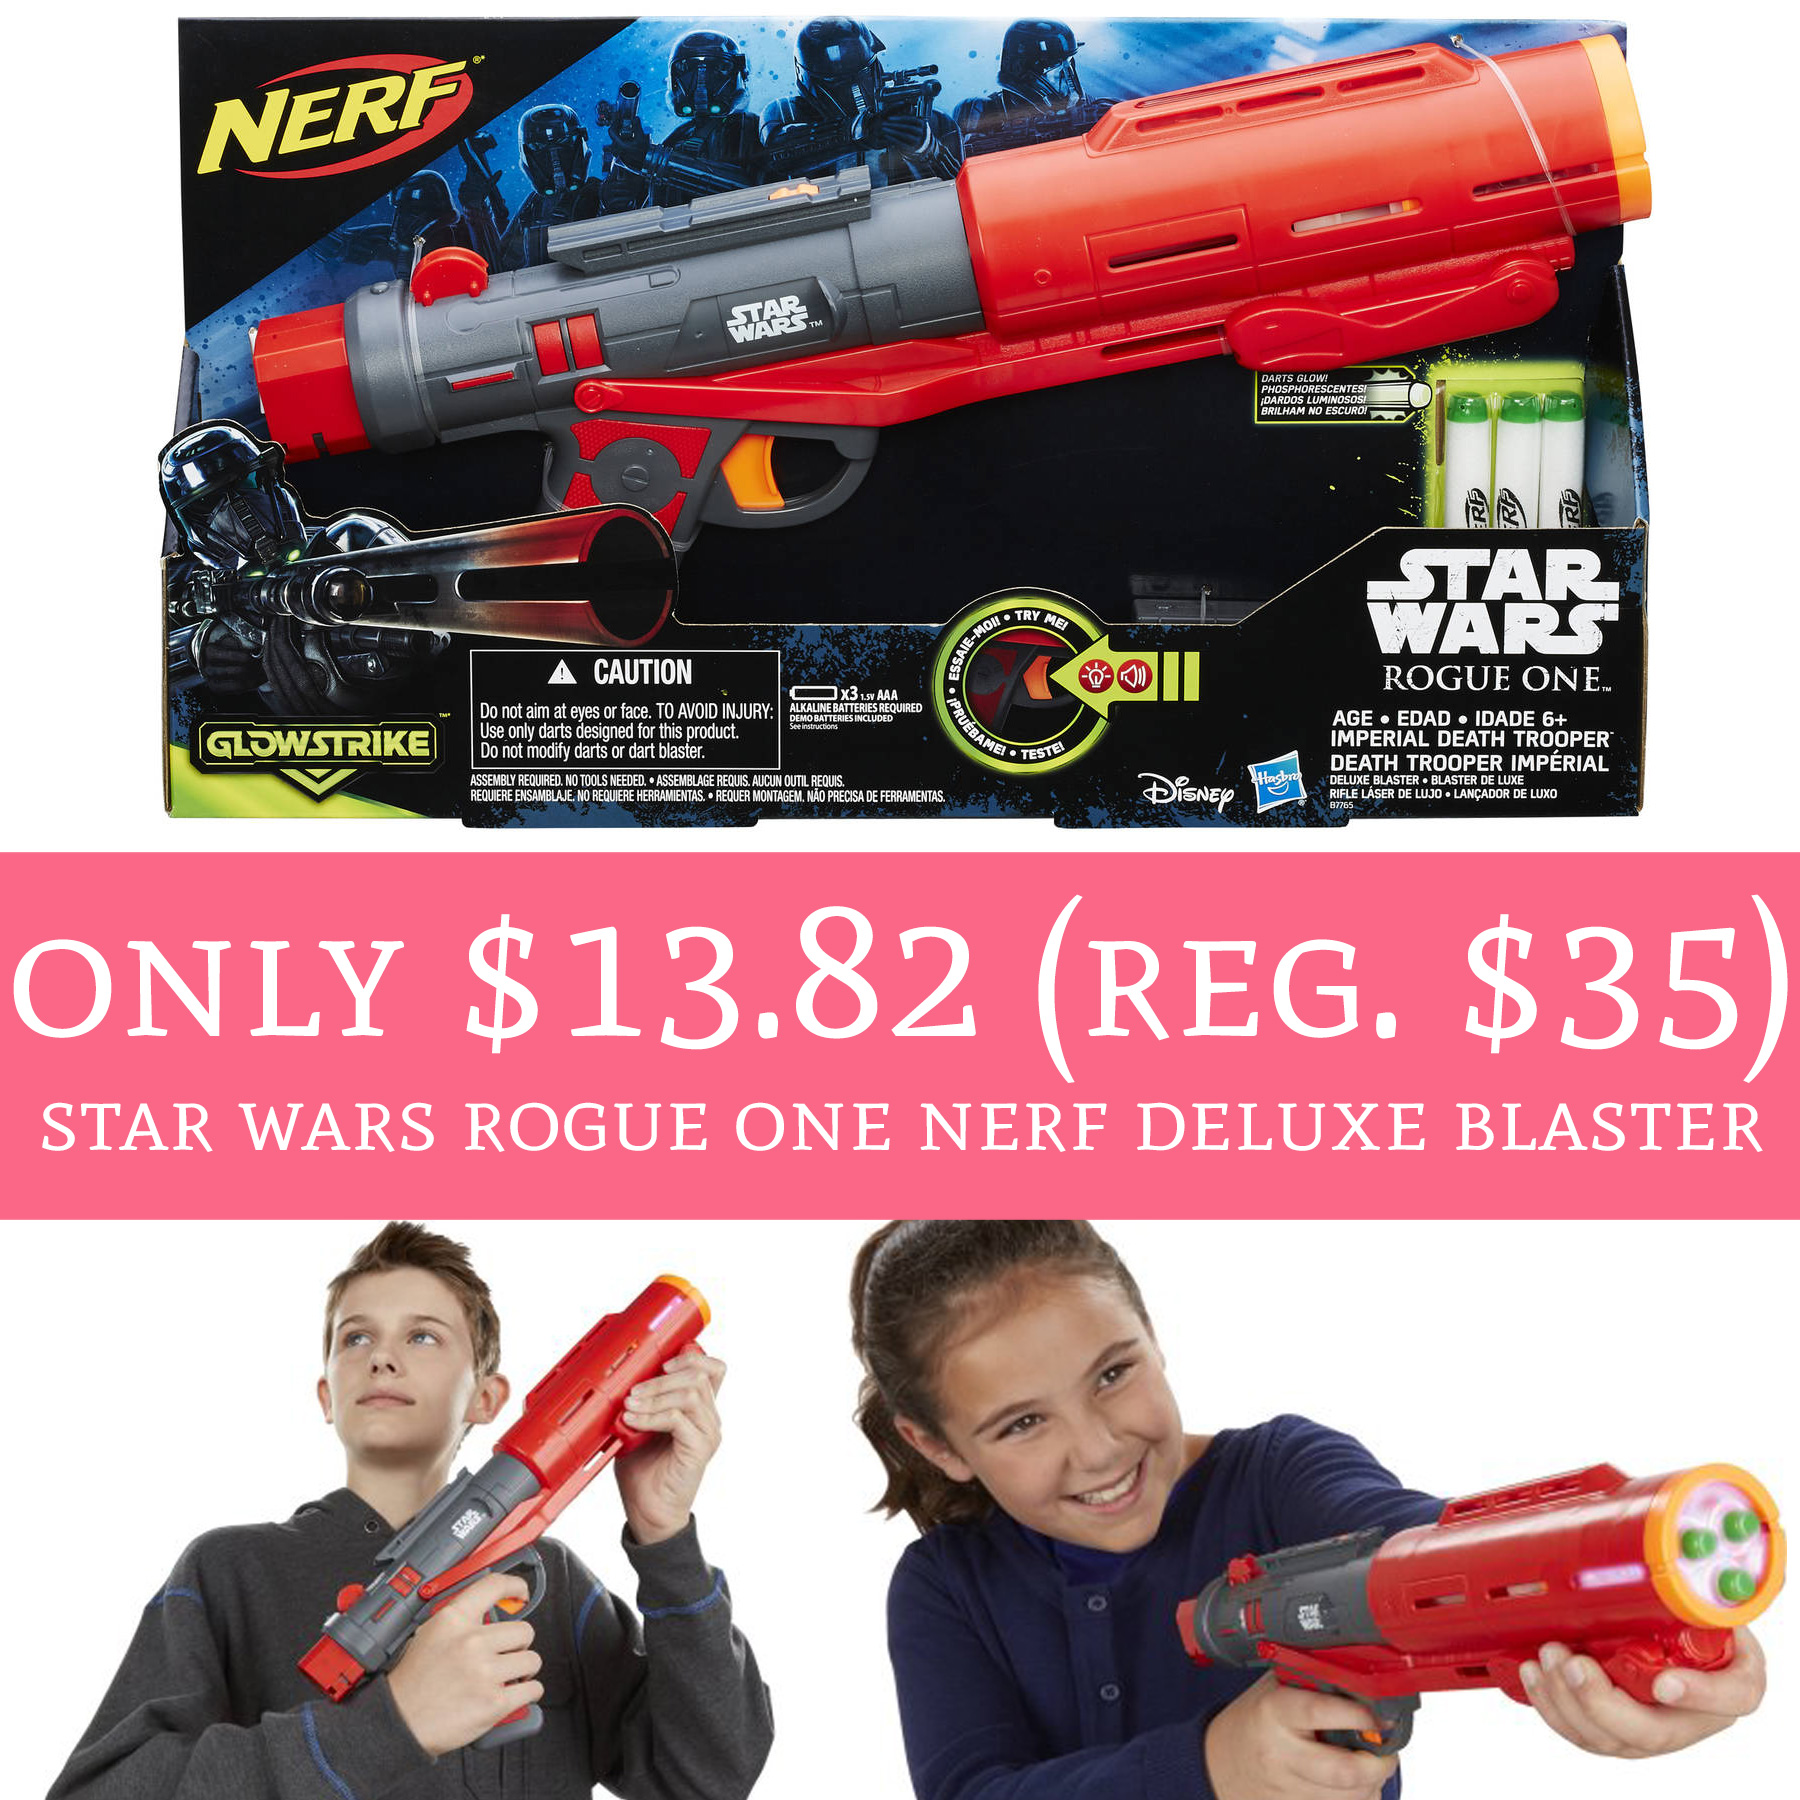 Do you have a Nerf fan?! Check out this sweet deal on Star Wars Rogue One  ...